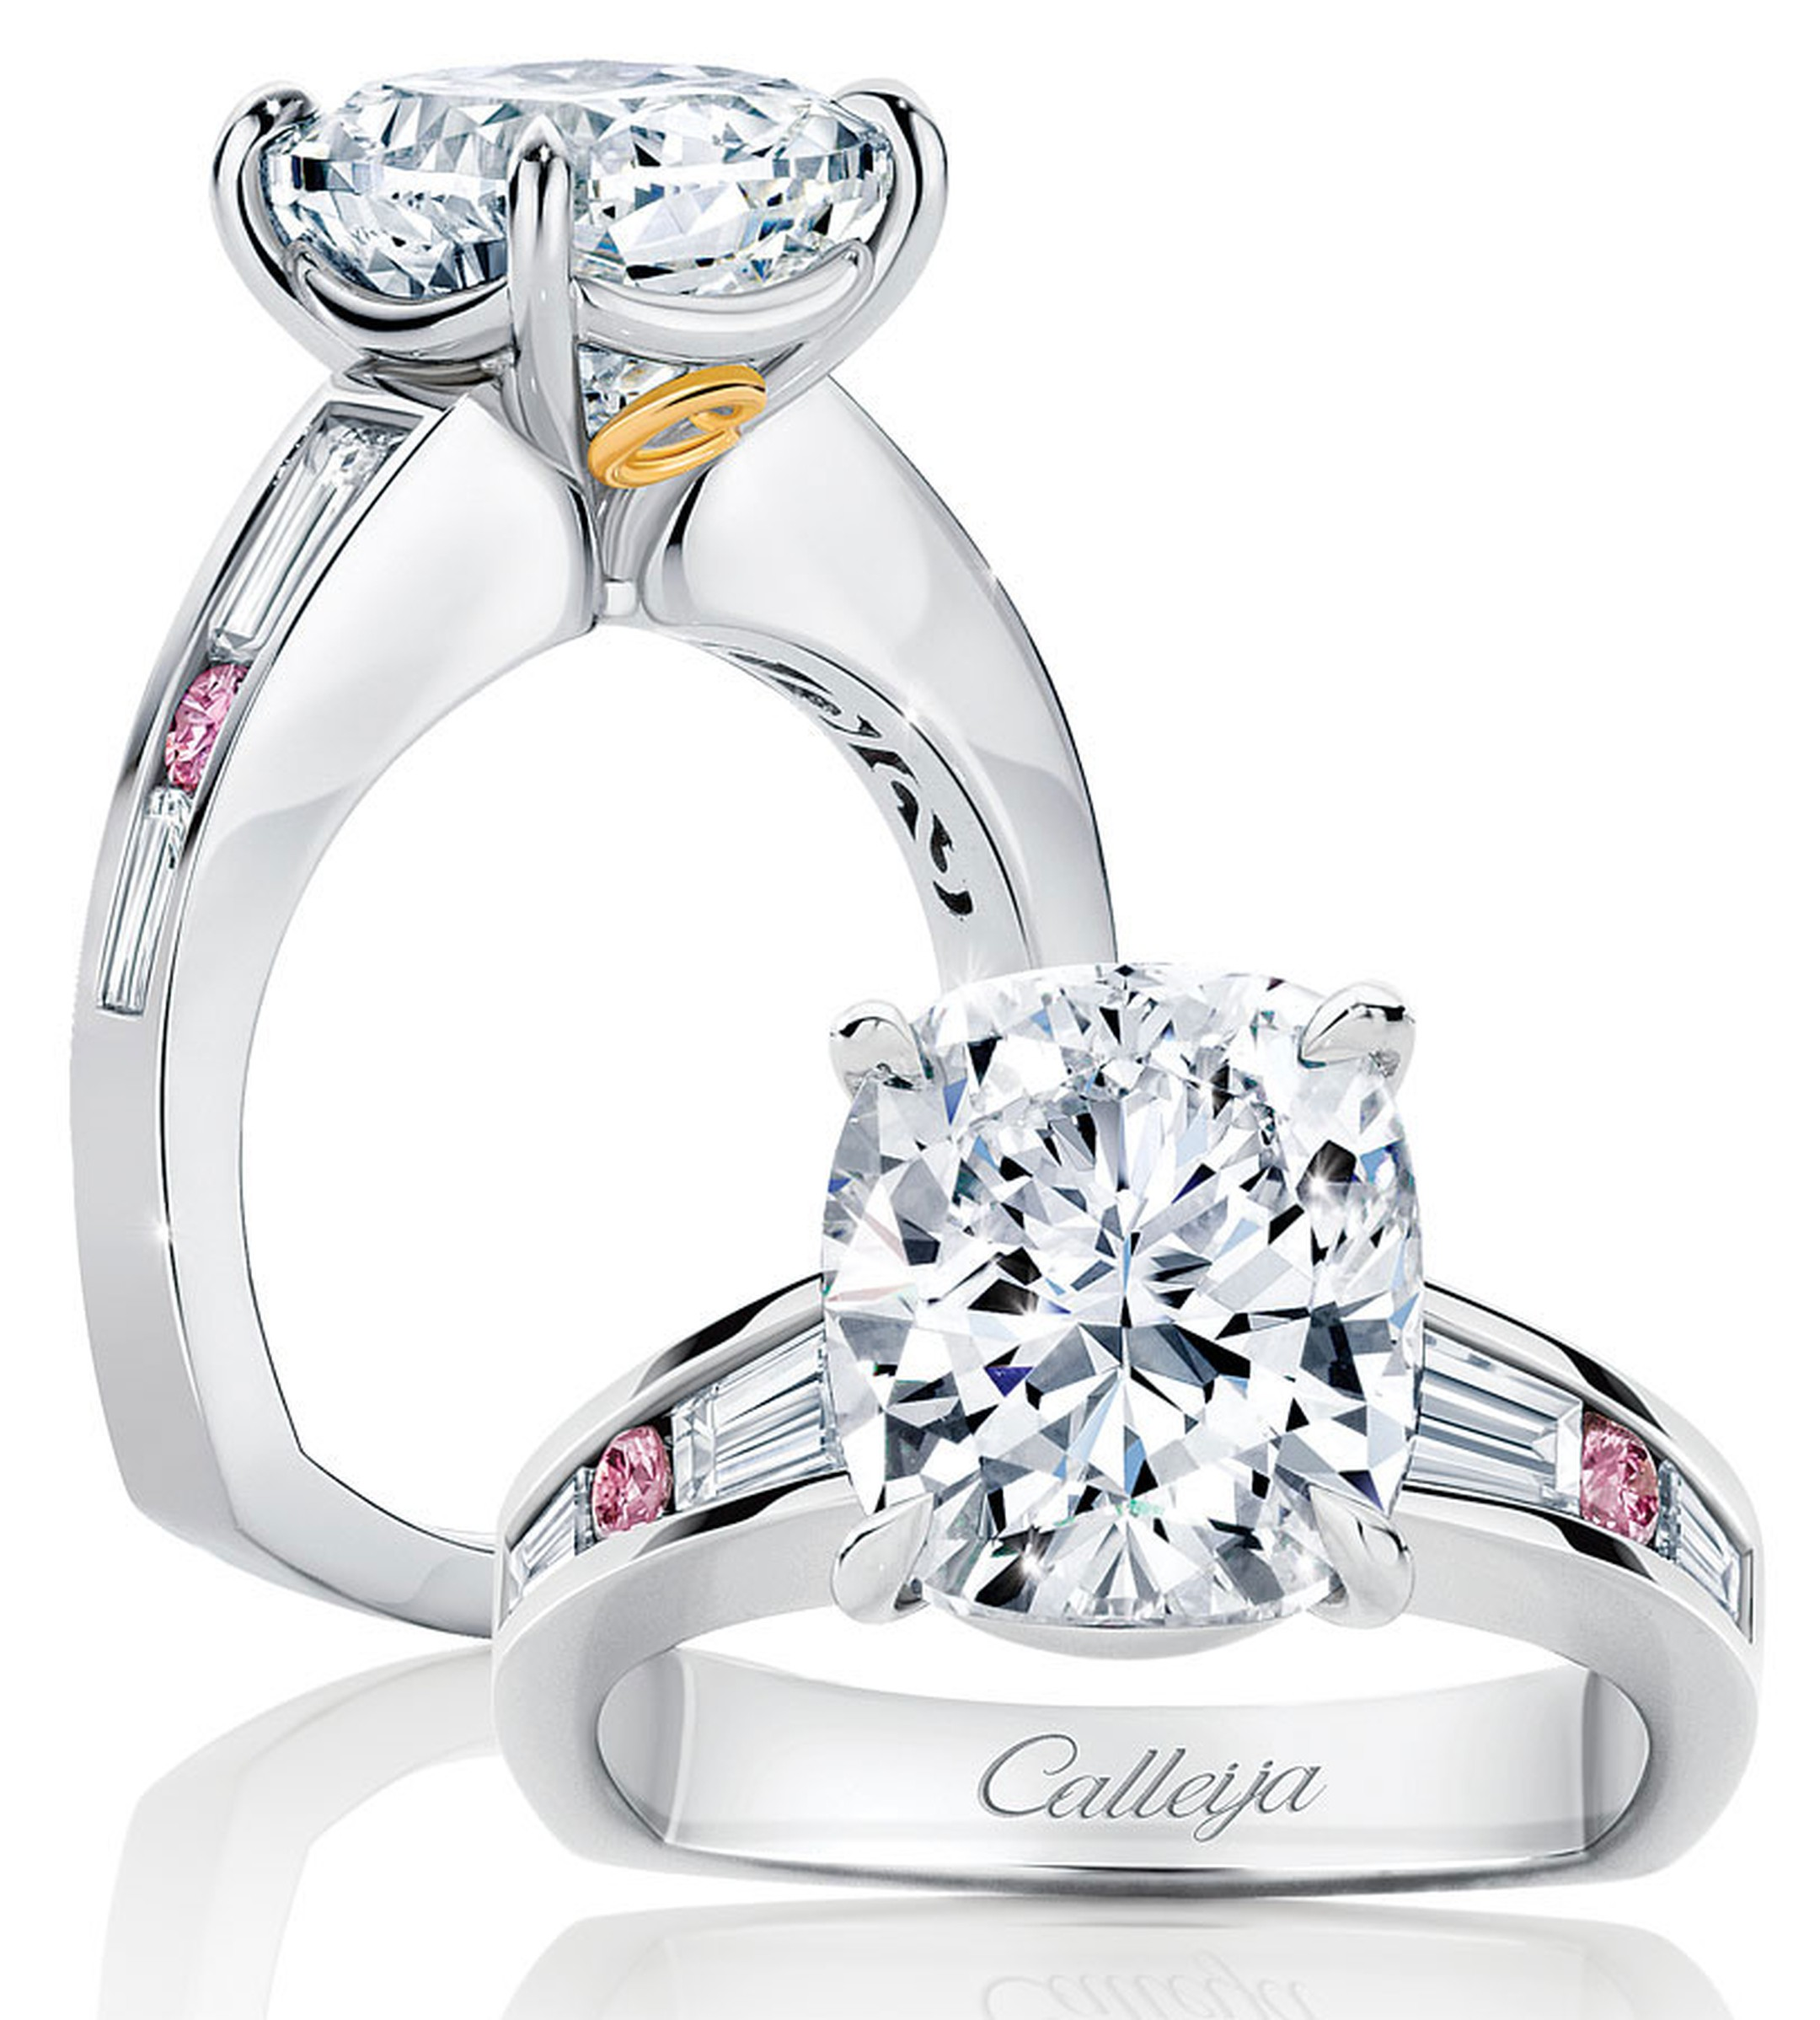 Calleija. French Rose. 18ct White Gold, Pink and White Diamond ring. Featuring 0.24ct Calleija. Round Brilliant Cut Australian Argyle Pink Diamond, and White Diamond shoulders. Price from £21,000.